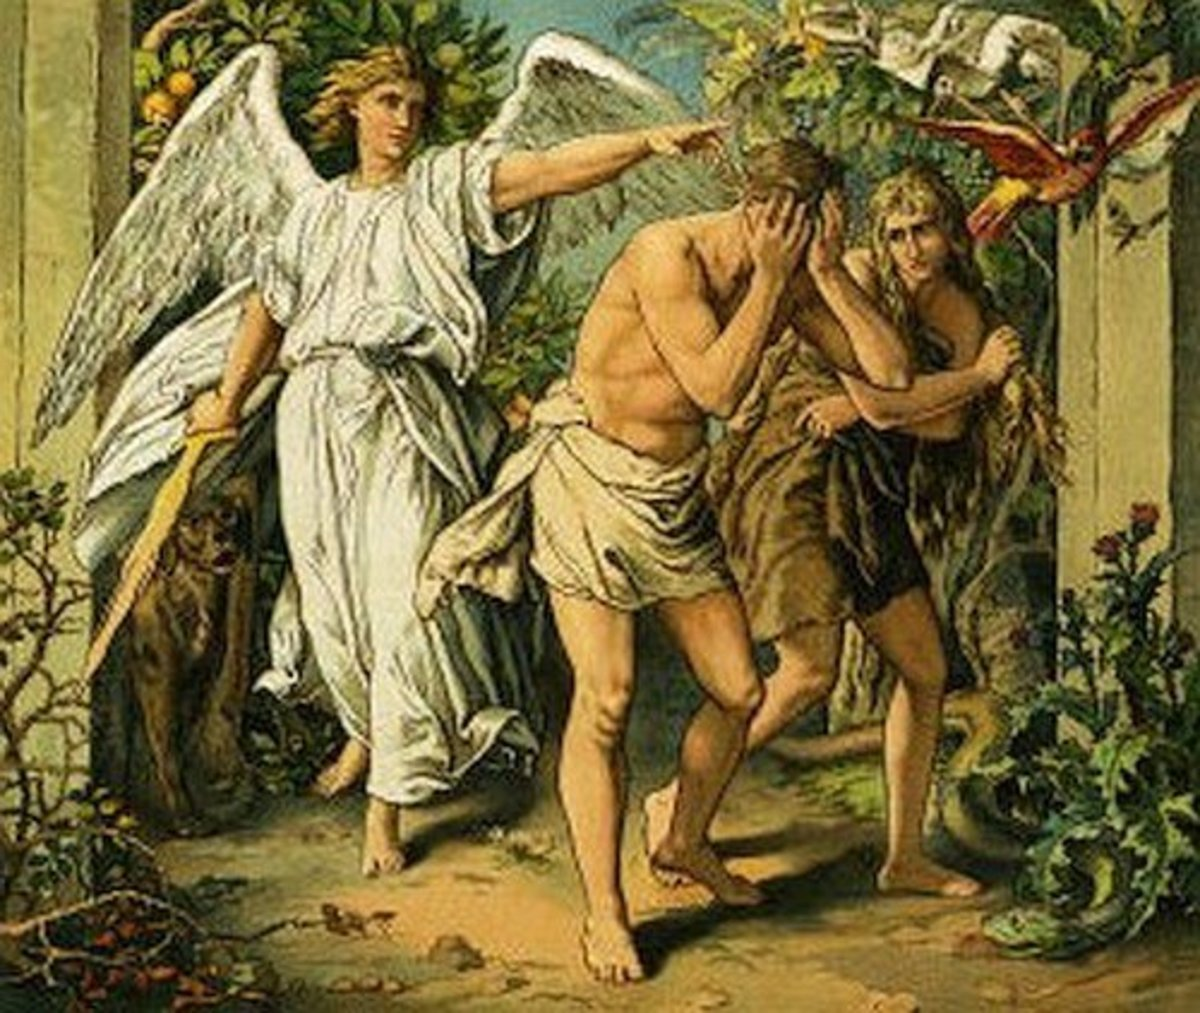 Adam and Eve being banished from the Garden of Eden.